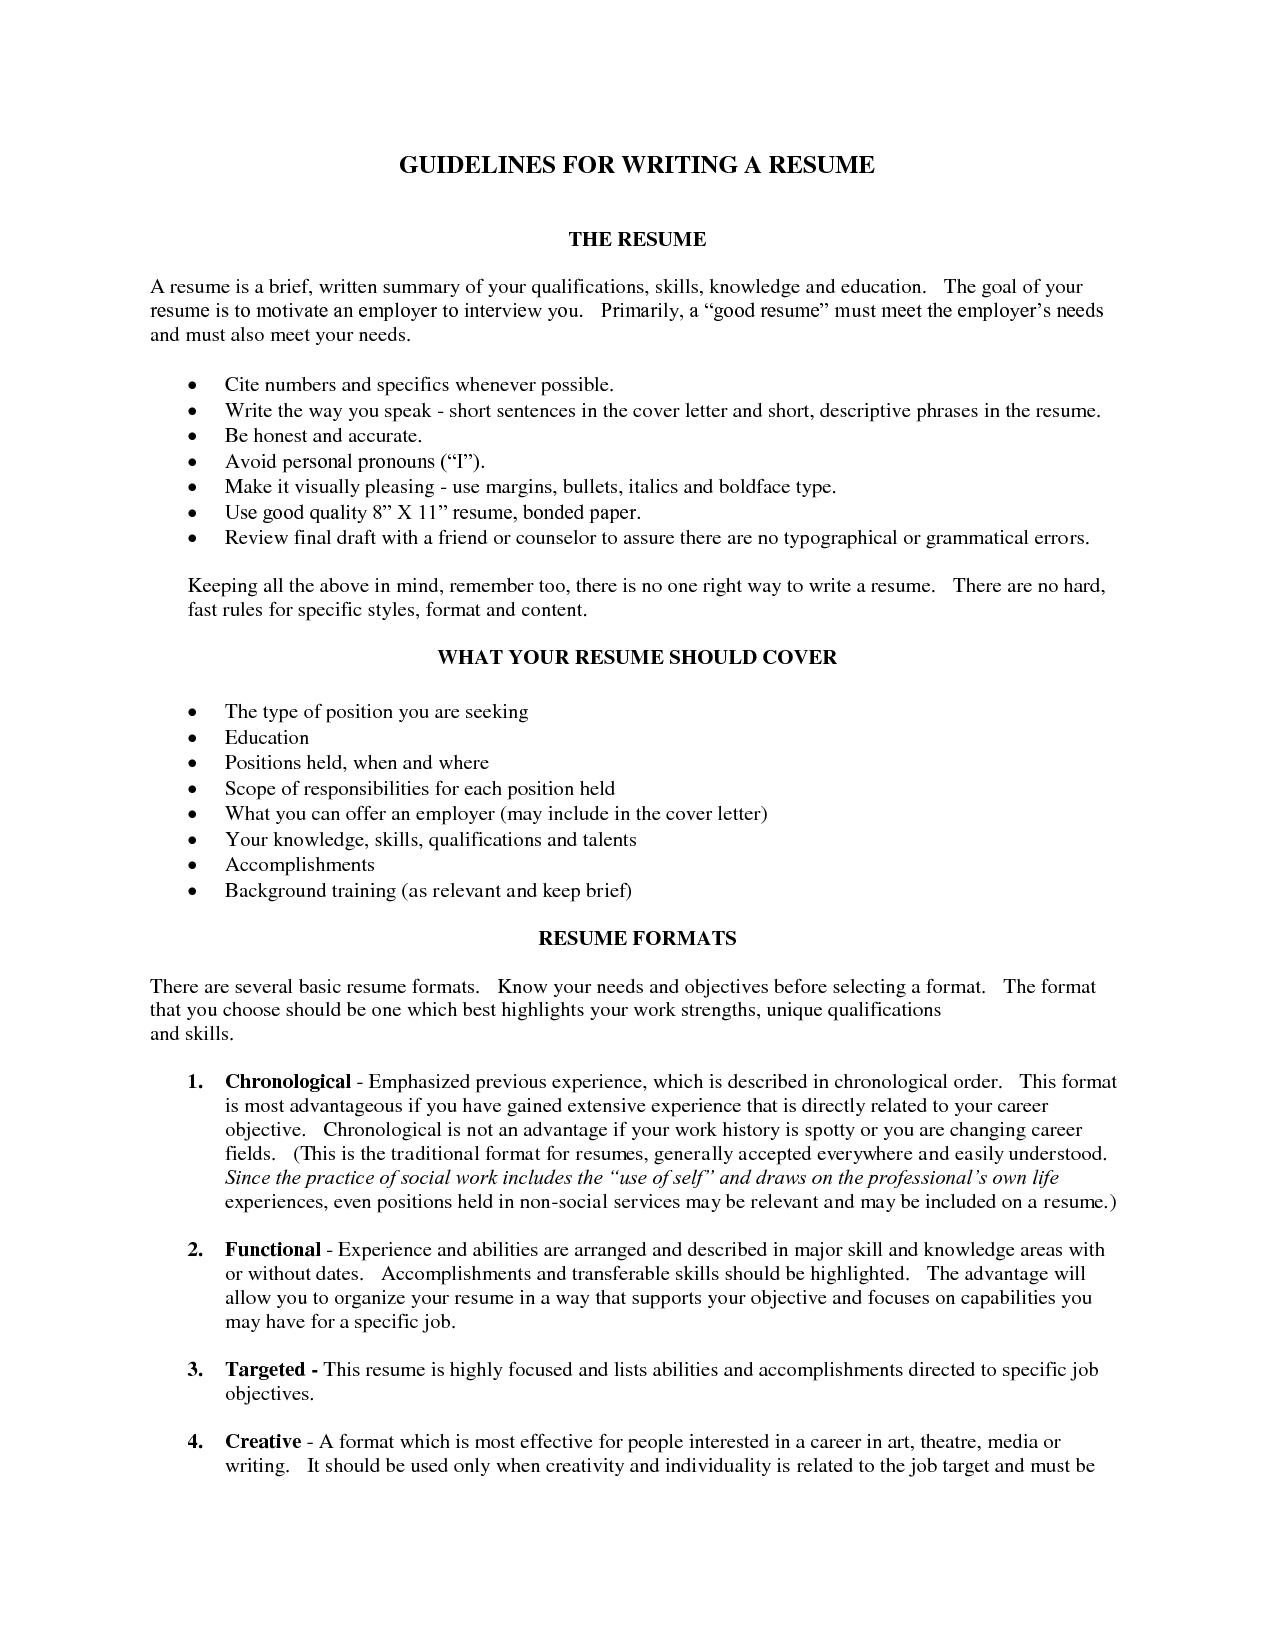 resume summary examples resume summary examples resume summary examples - Skills And Accomplishments Resume Examples